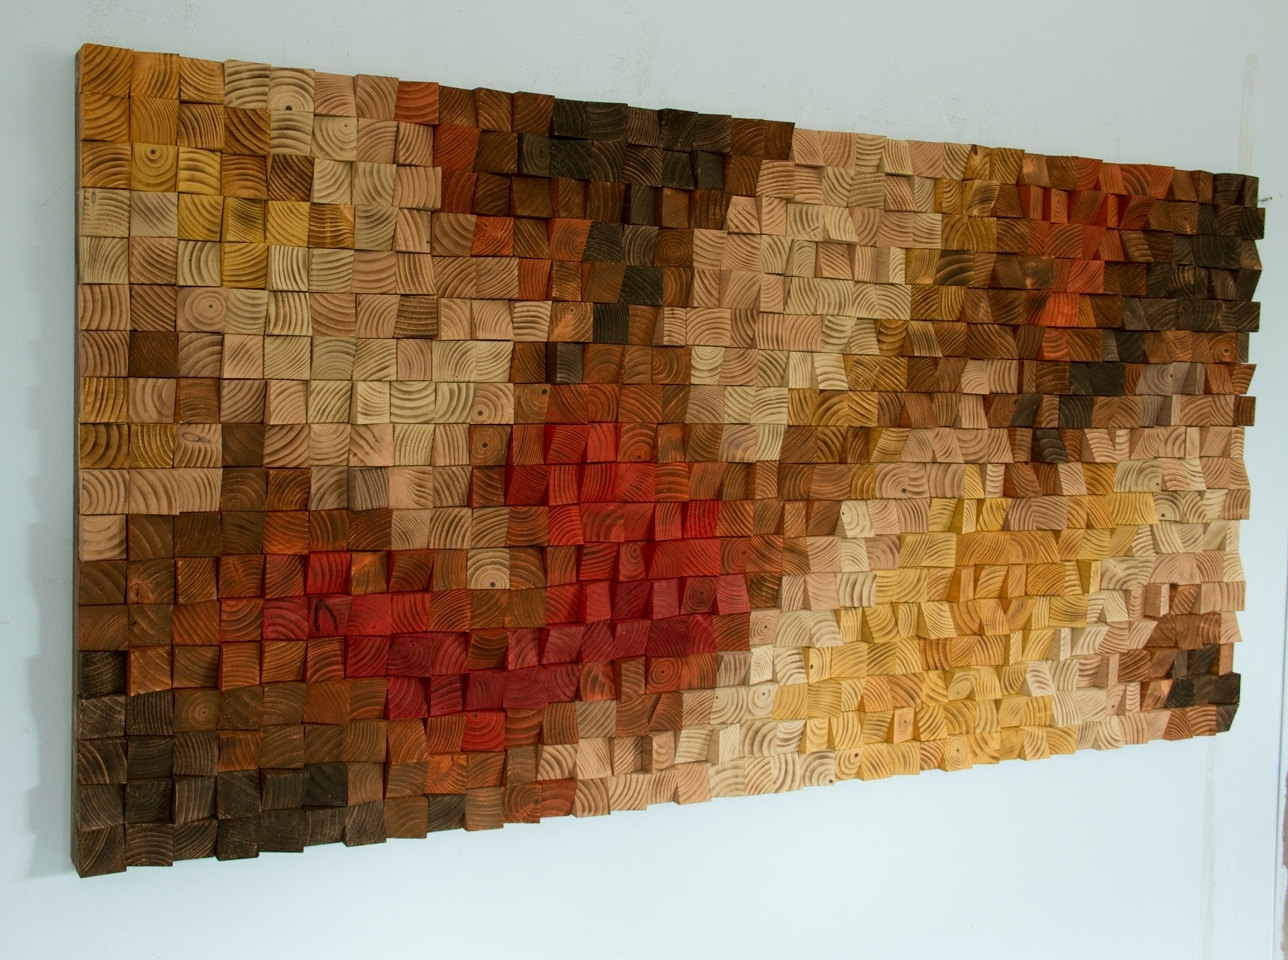 Large Rustic Wood Wall Art, Wood Wall Sculpture, Abstract Painting Pertaining To 2018 Sculpture Abstract Wall Art (Gallery 5 of 20)